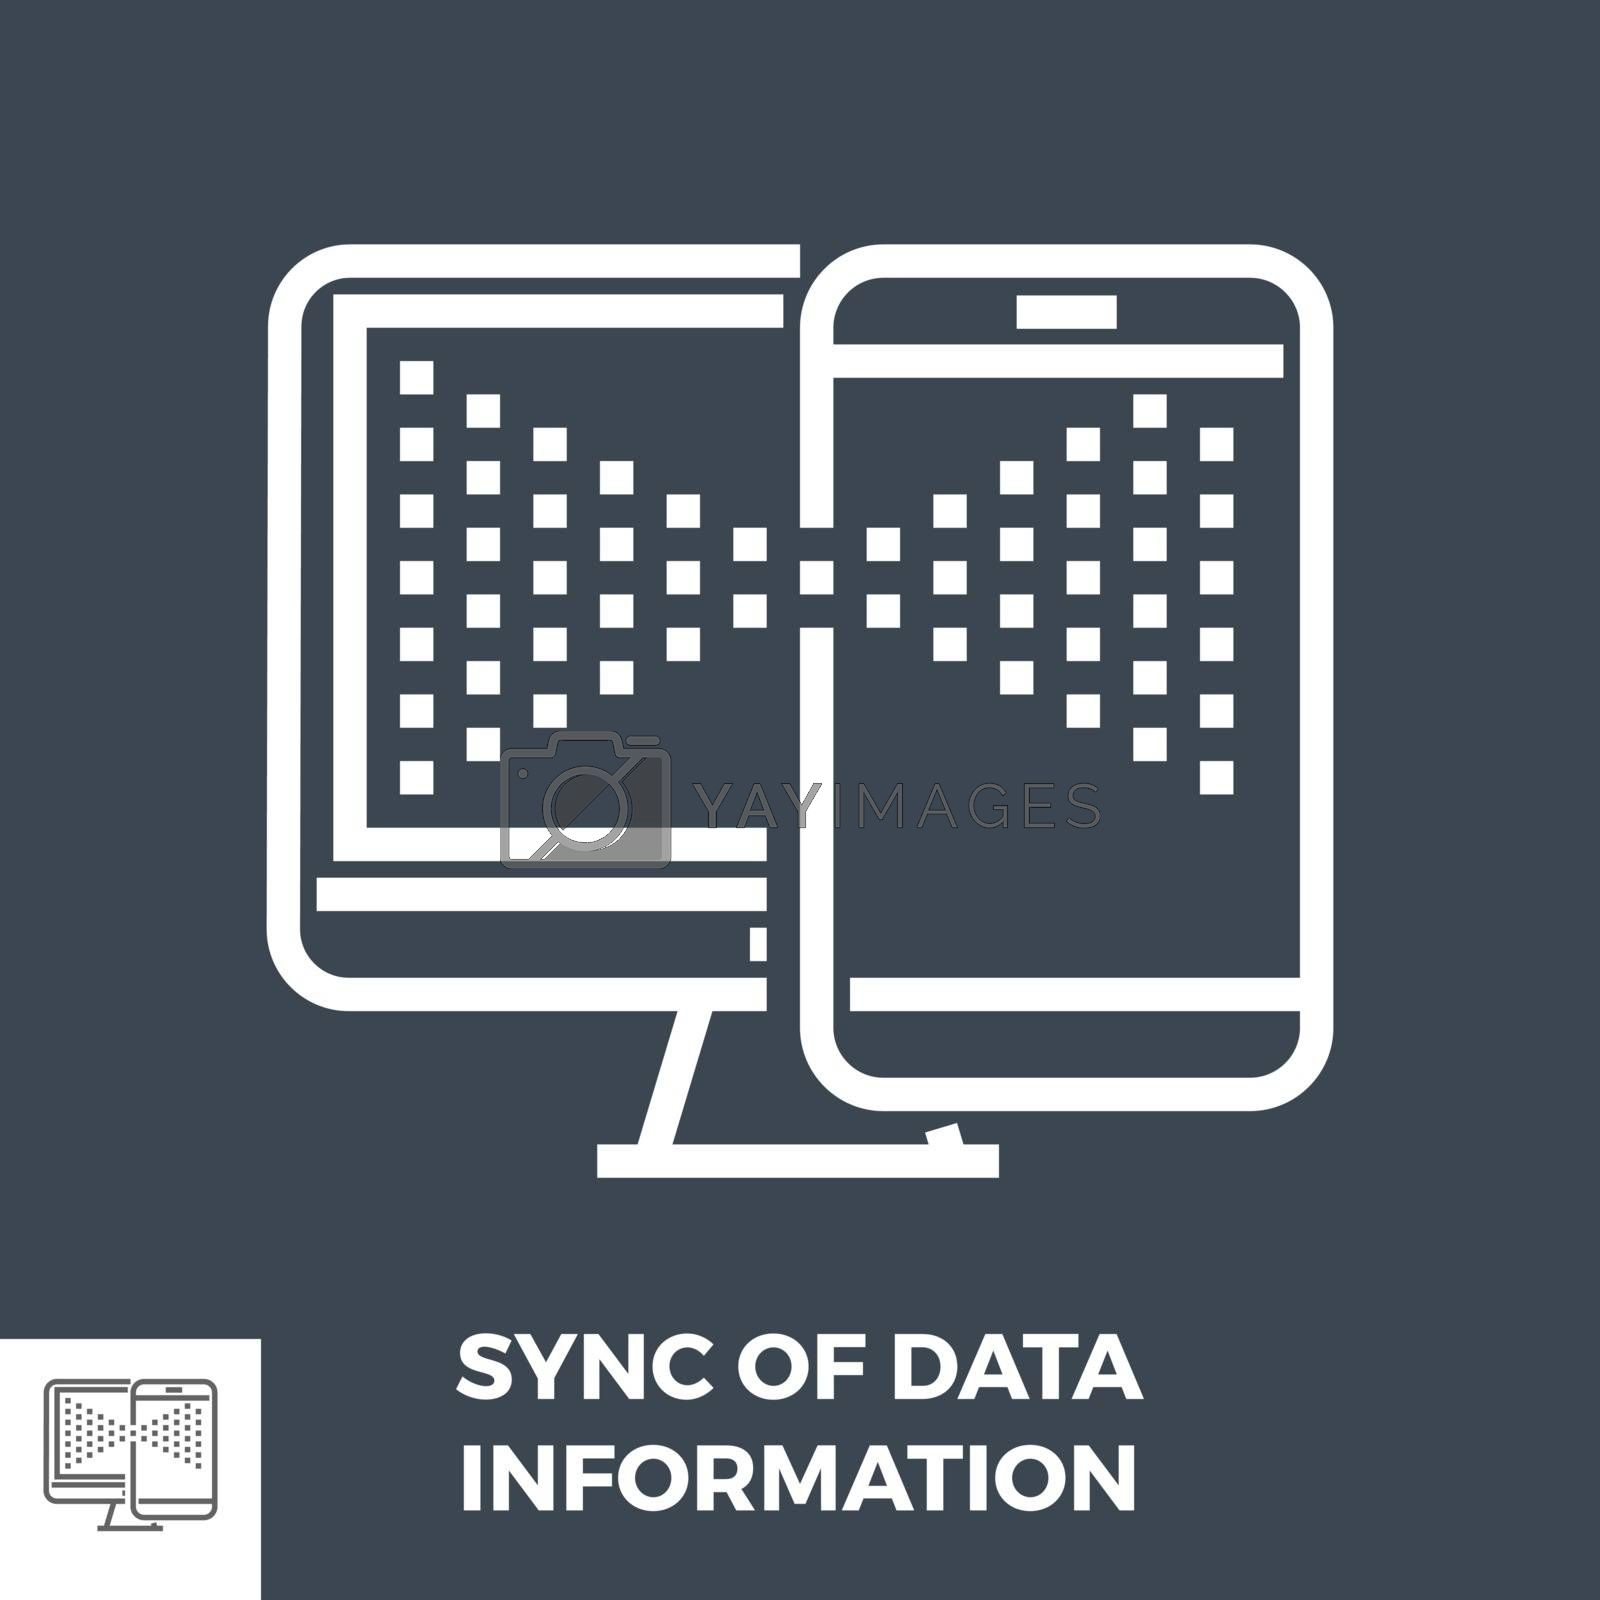 Sync of Data Infomation Thin Line Vector Icon Isolated on the Black Background.